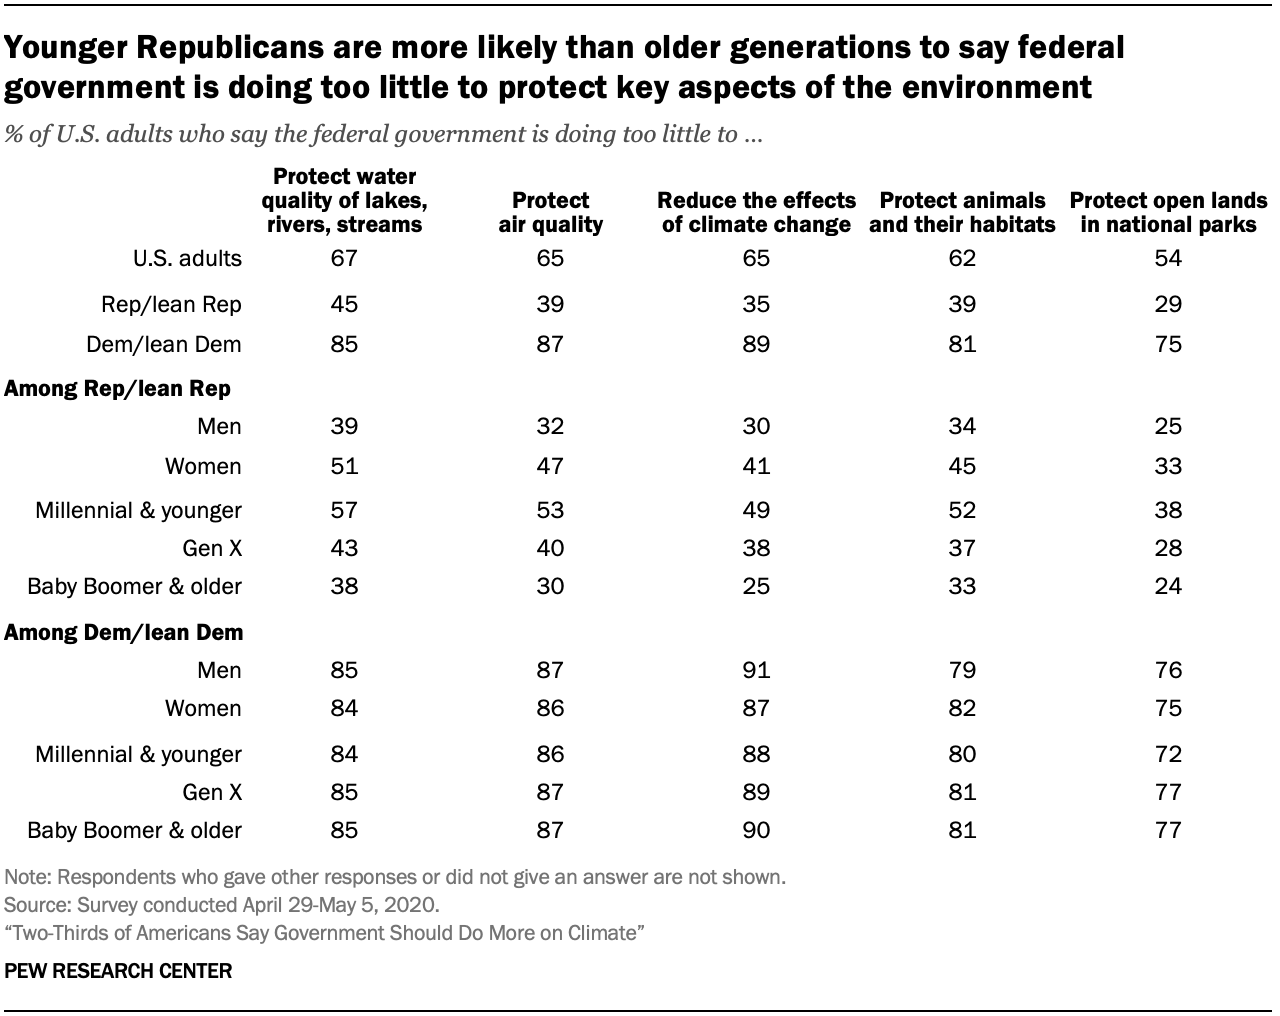 Chart shows younger Republicans are more likely than older generations to say federal government is doing too little to protect key aspects of the environment